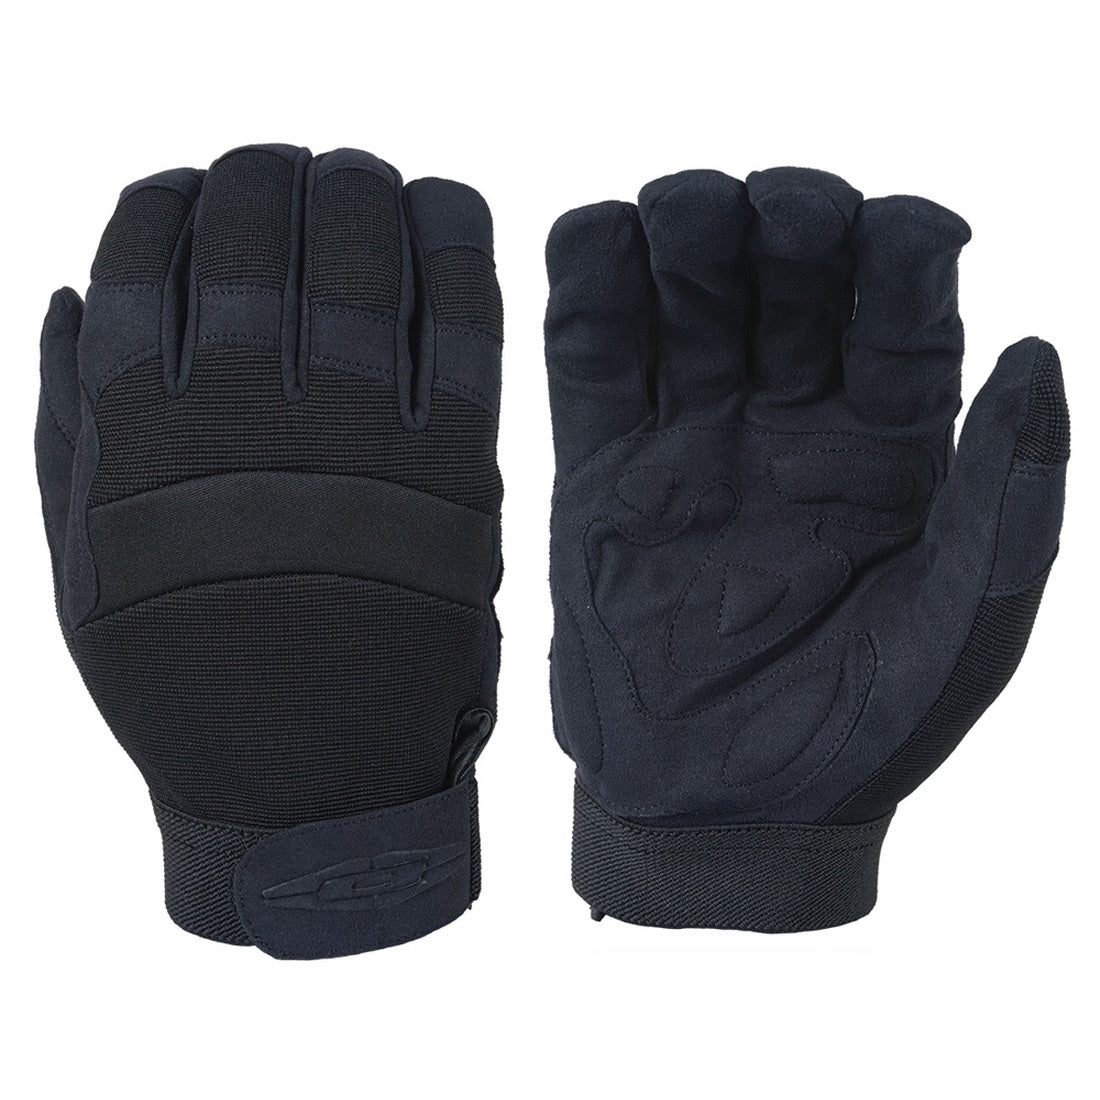 Damascus Gear Nexstar II - Medium Weight duty gloves (Black)